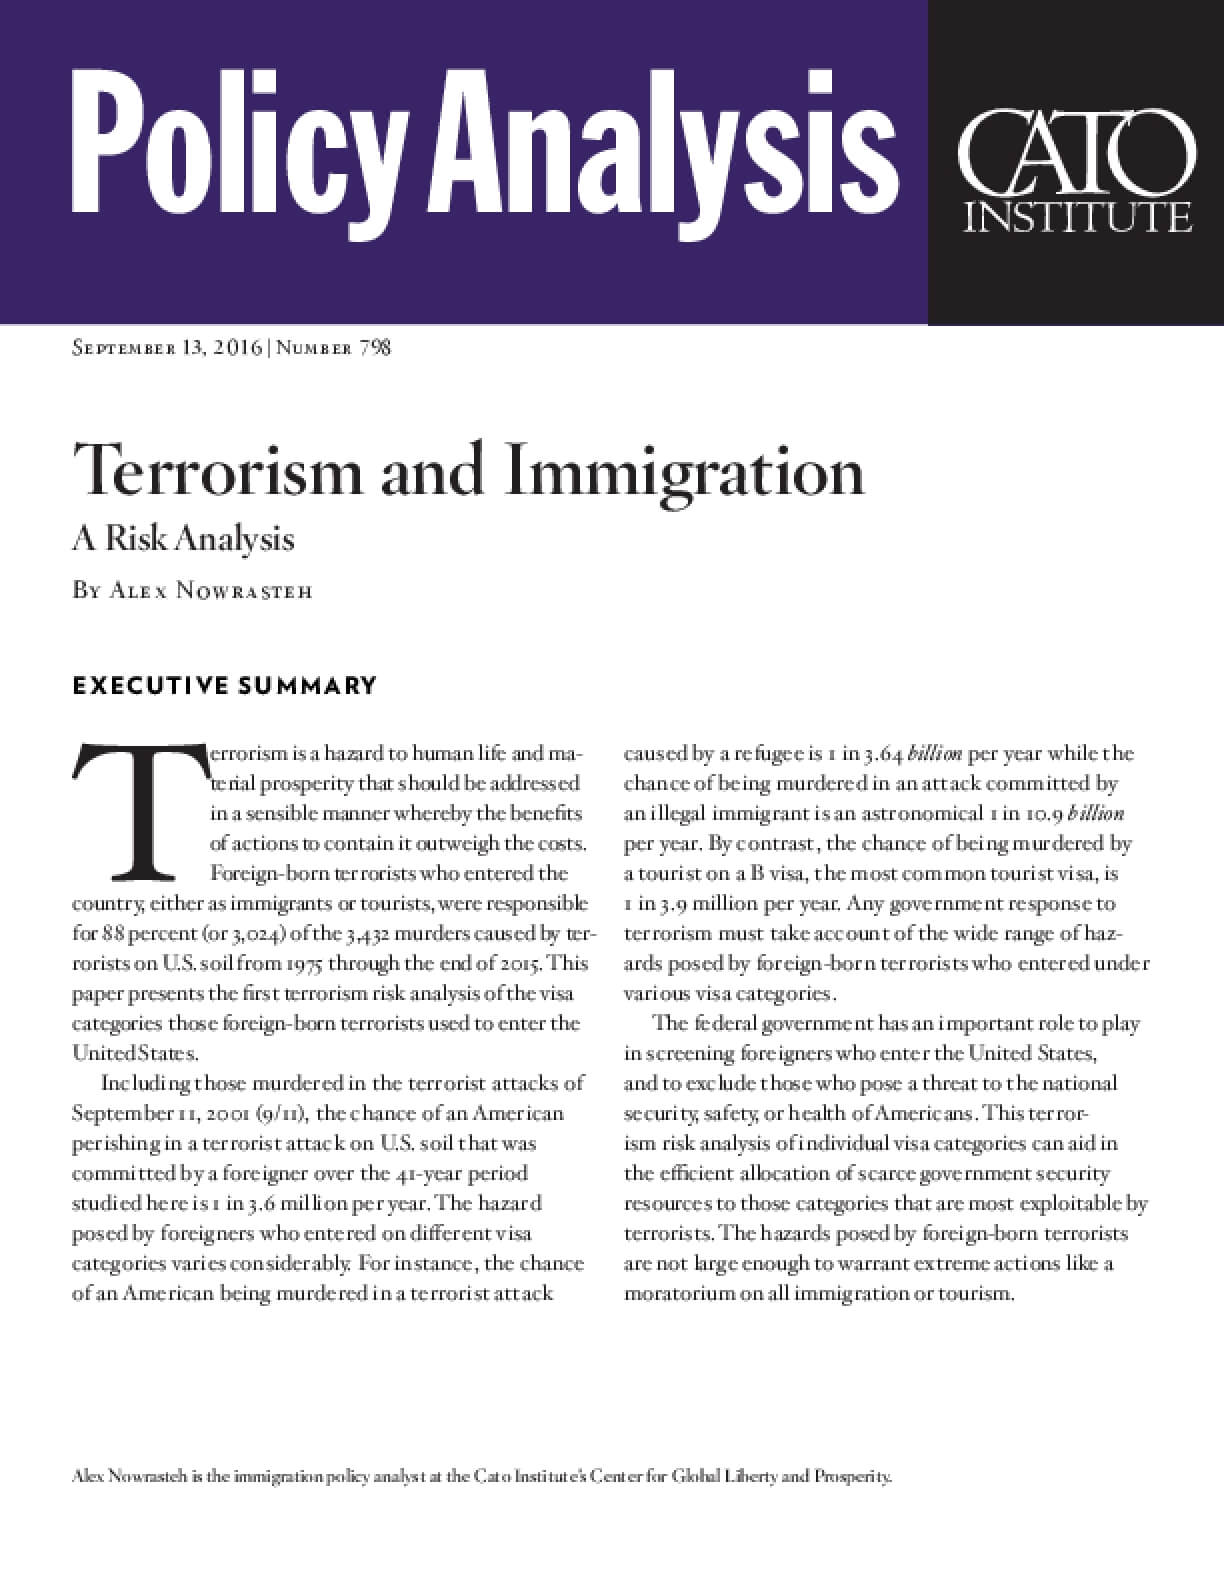 Terrorism and Immigration: A Risk Analysis